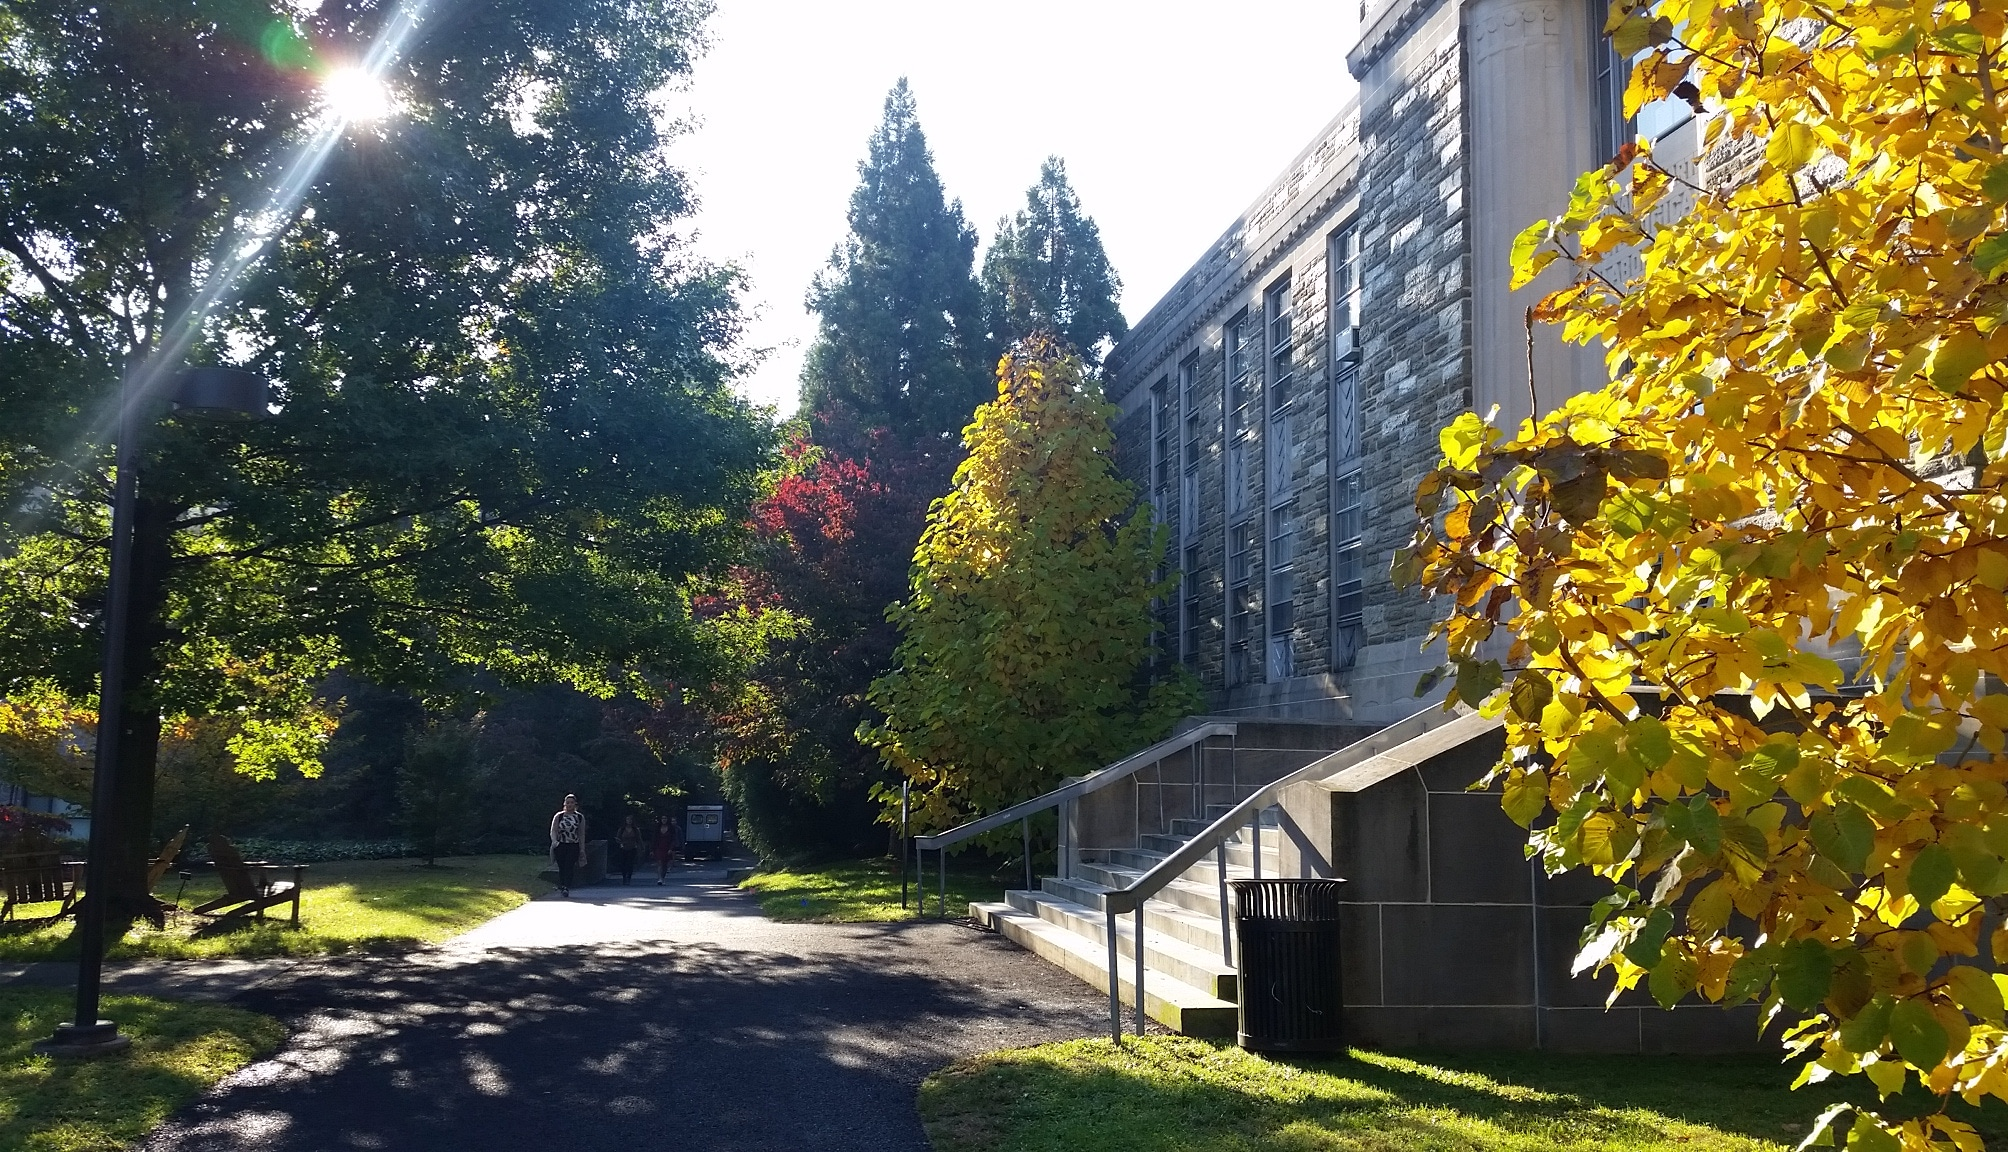 I will make extensive use of Swarthmore College's Crum Woods for Conservation Biology laboratory activities.